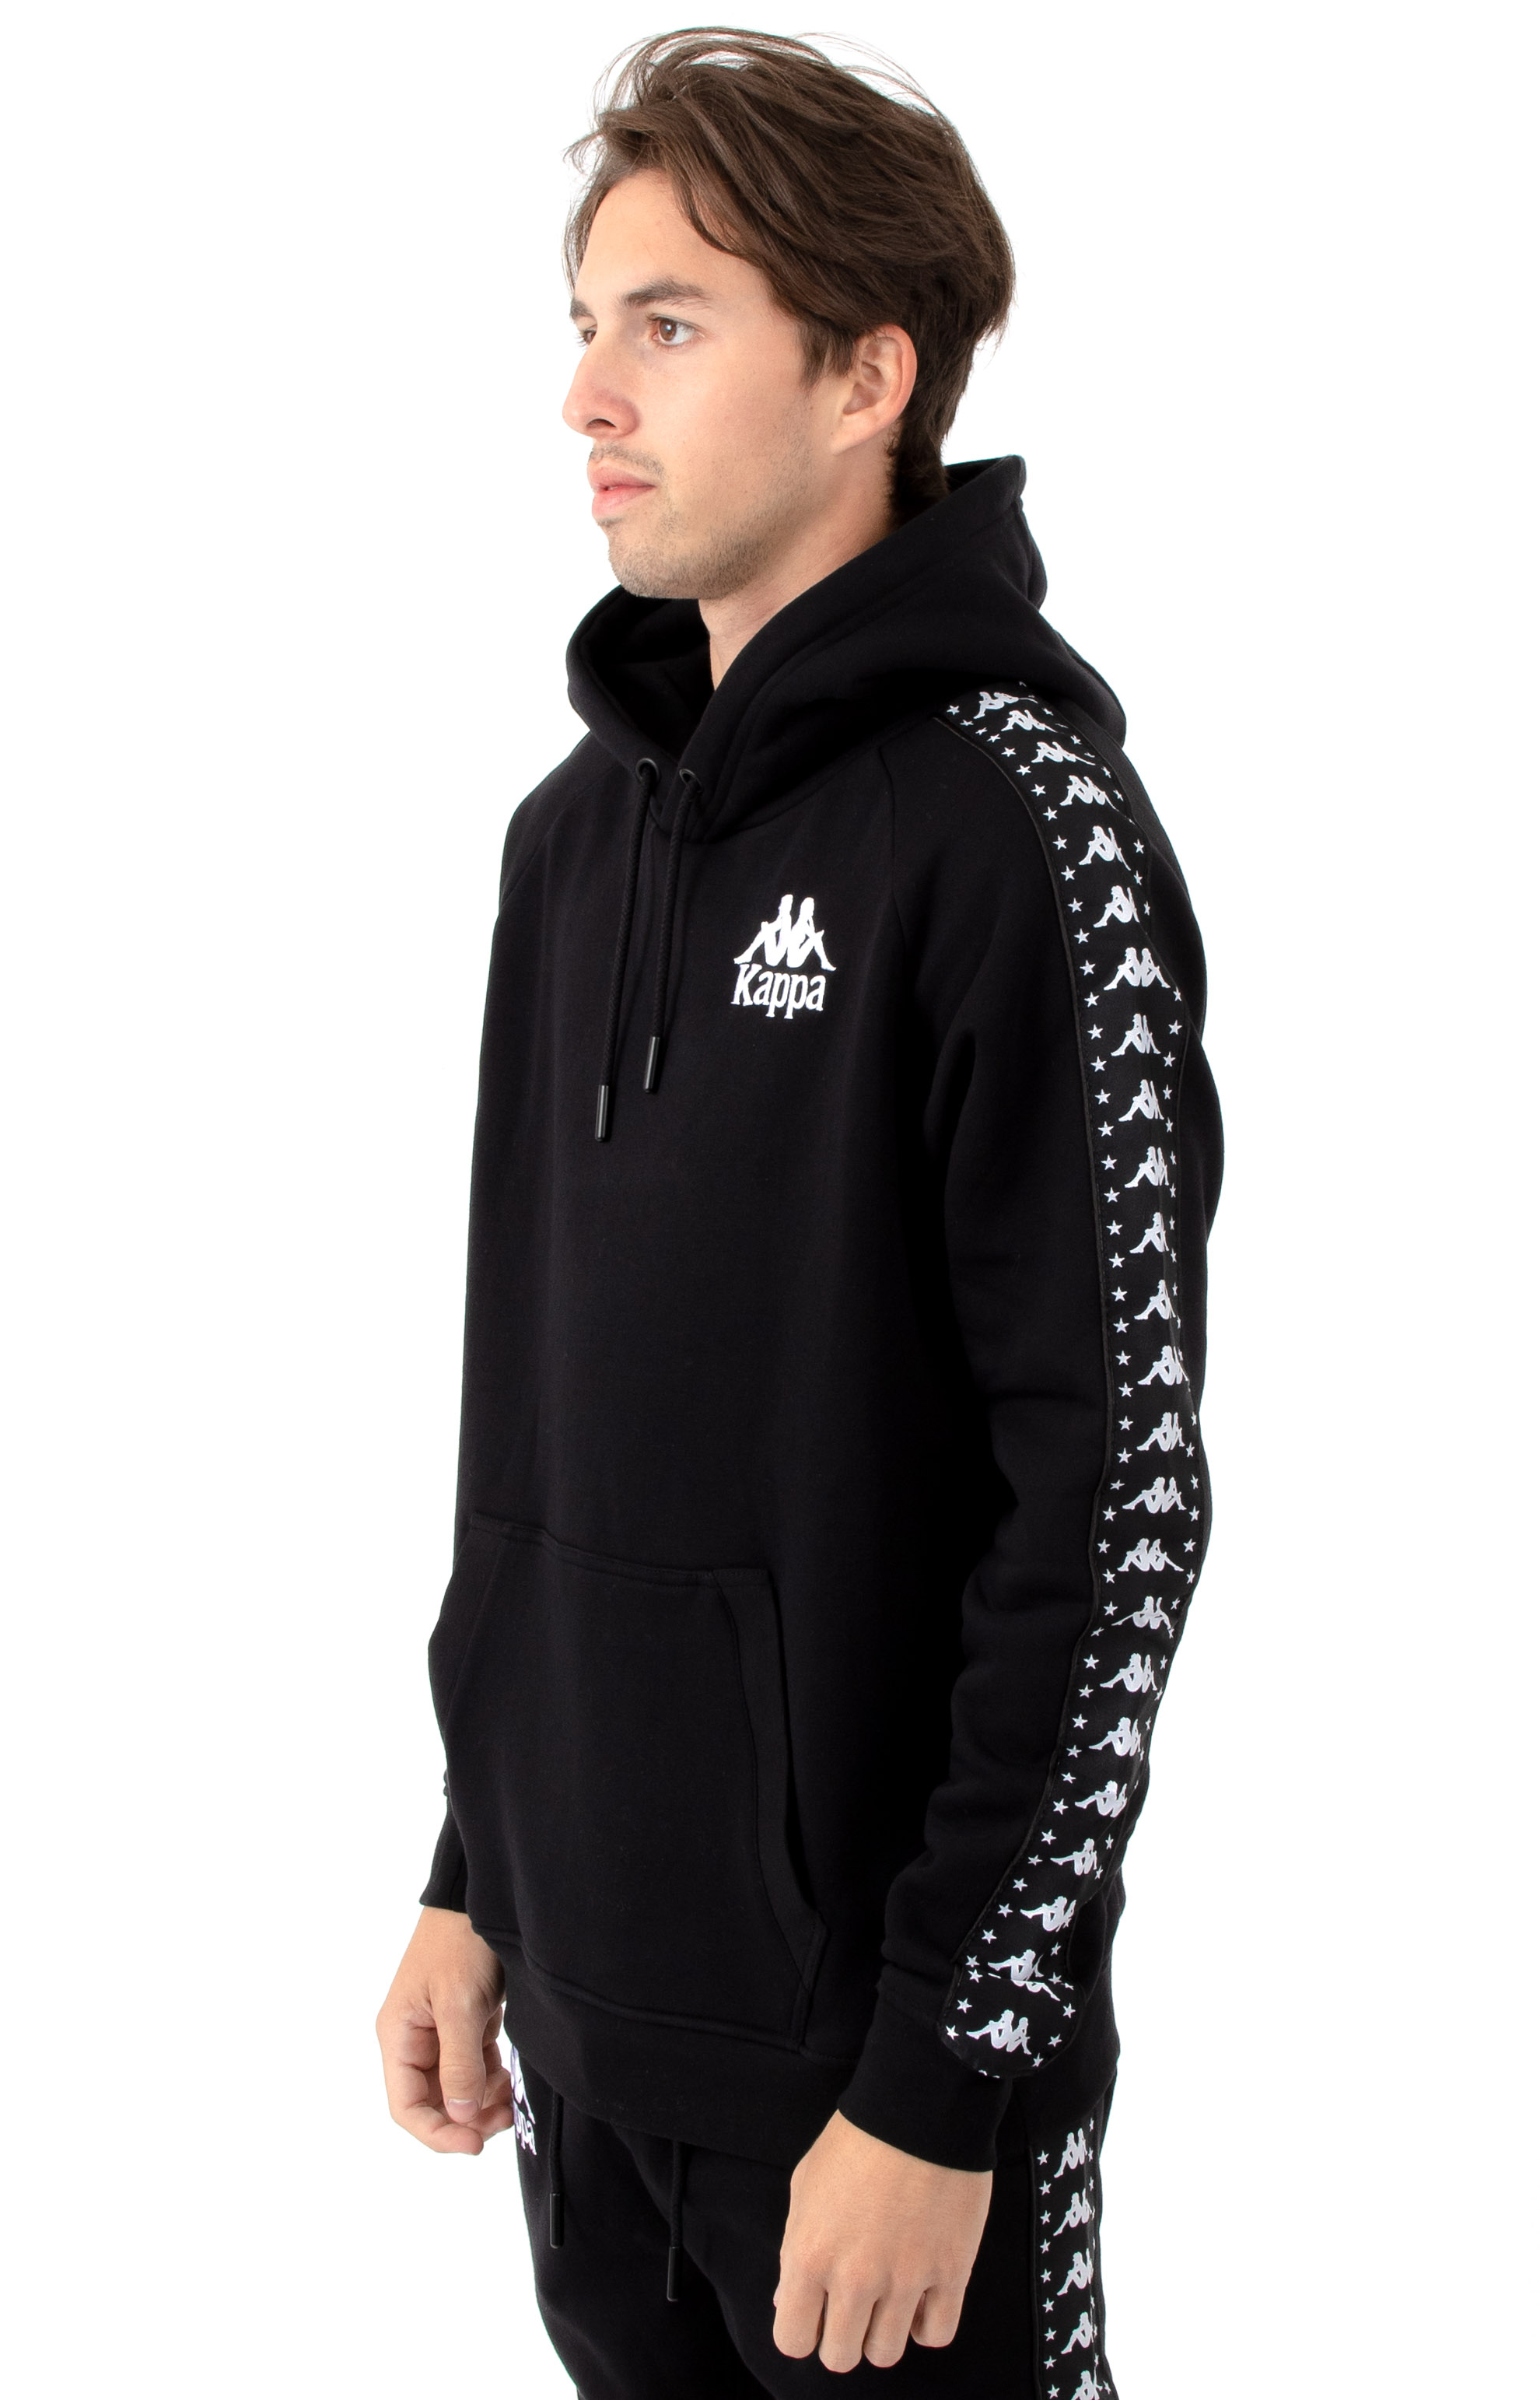 Authentic Porta Pullover Hoodie - Black/White